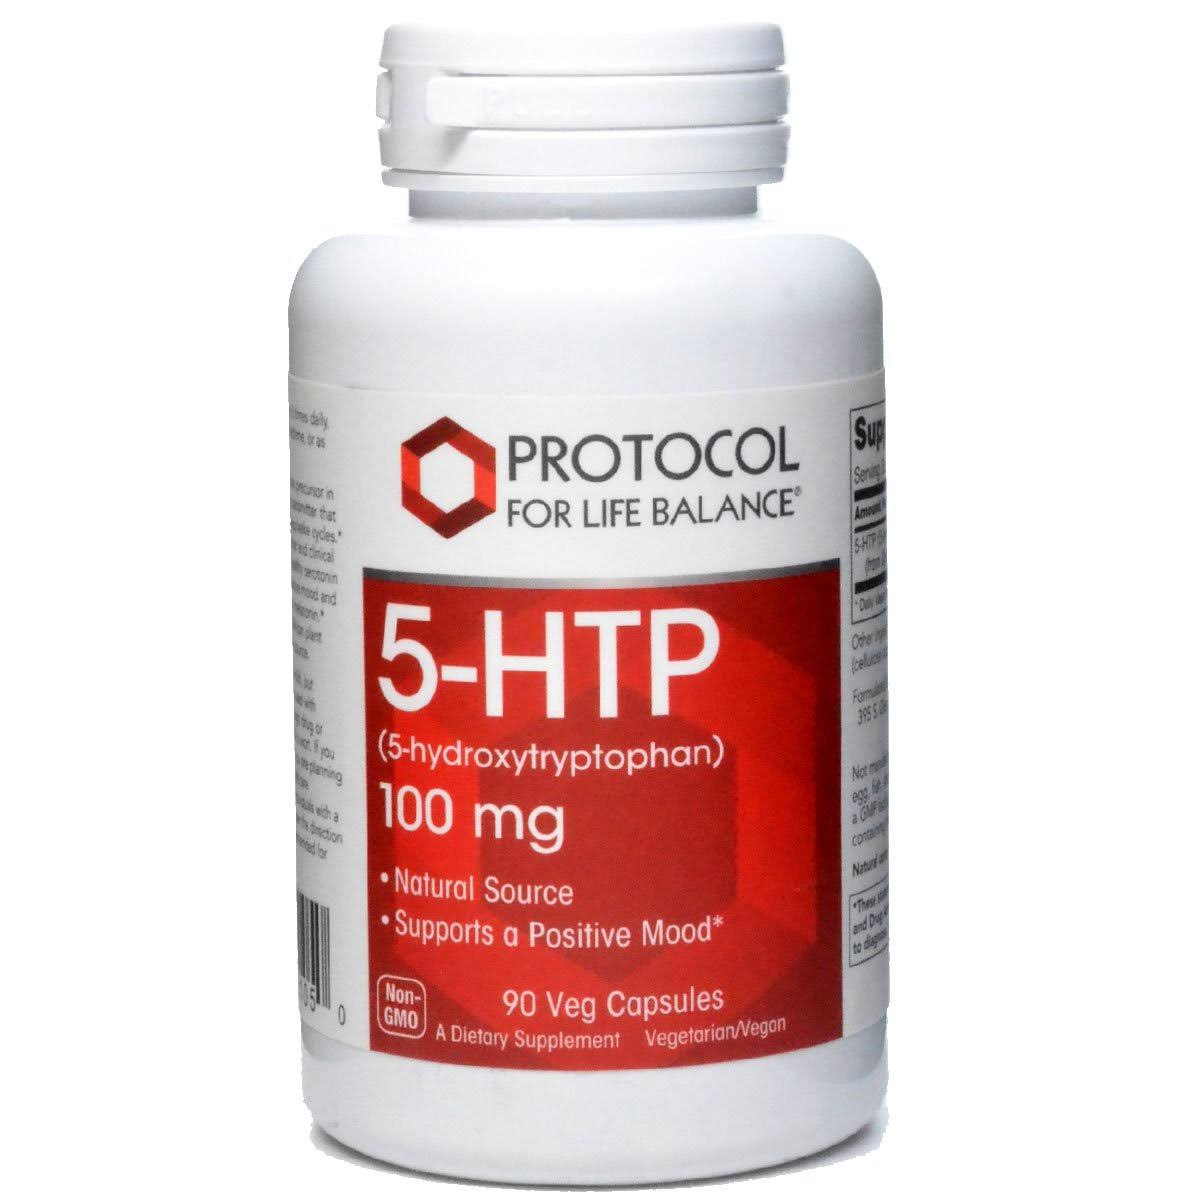 Protocol for Life Balance 5-HTP Serotonin Supplements - 100mg, x90